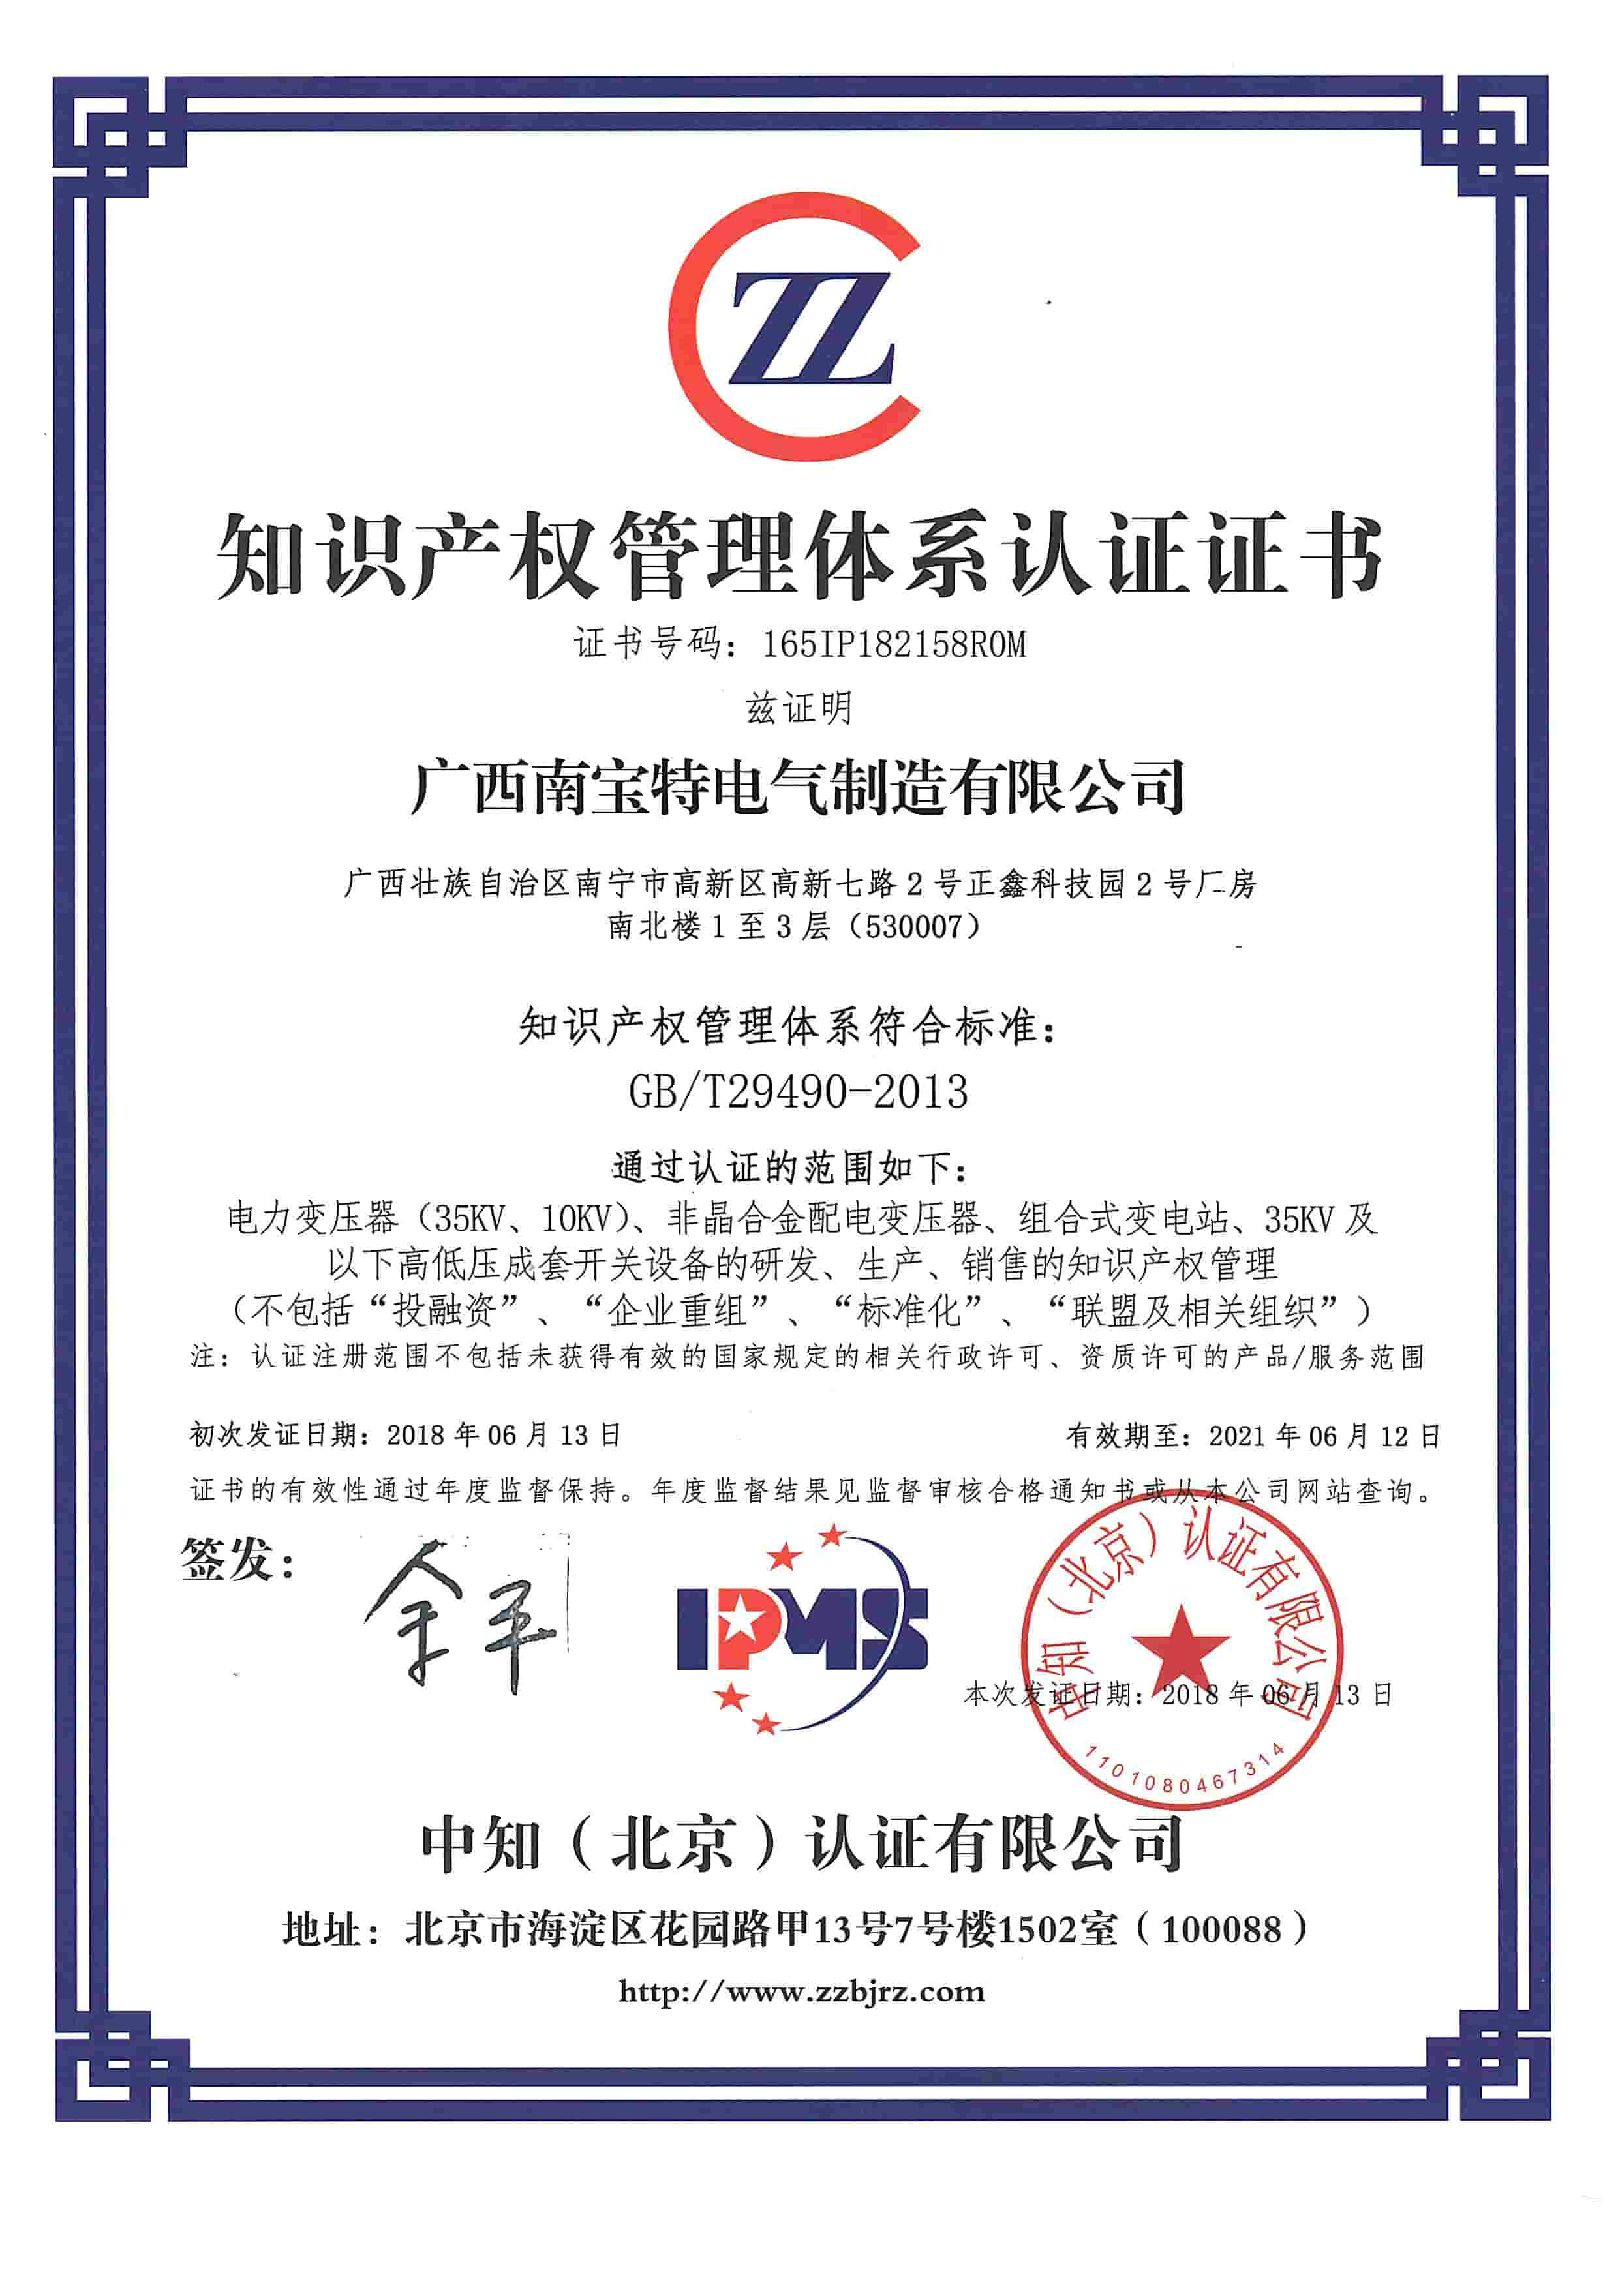 Intellectual Property Management system Authentication Certificate